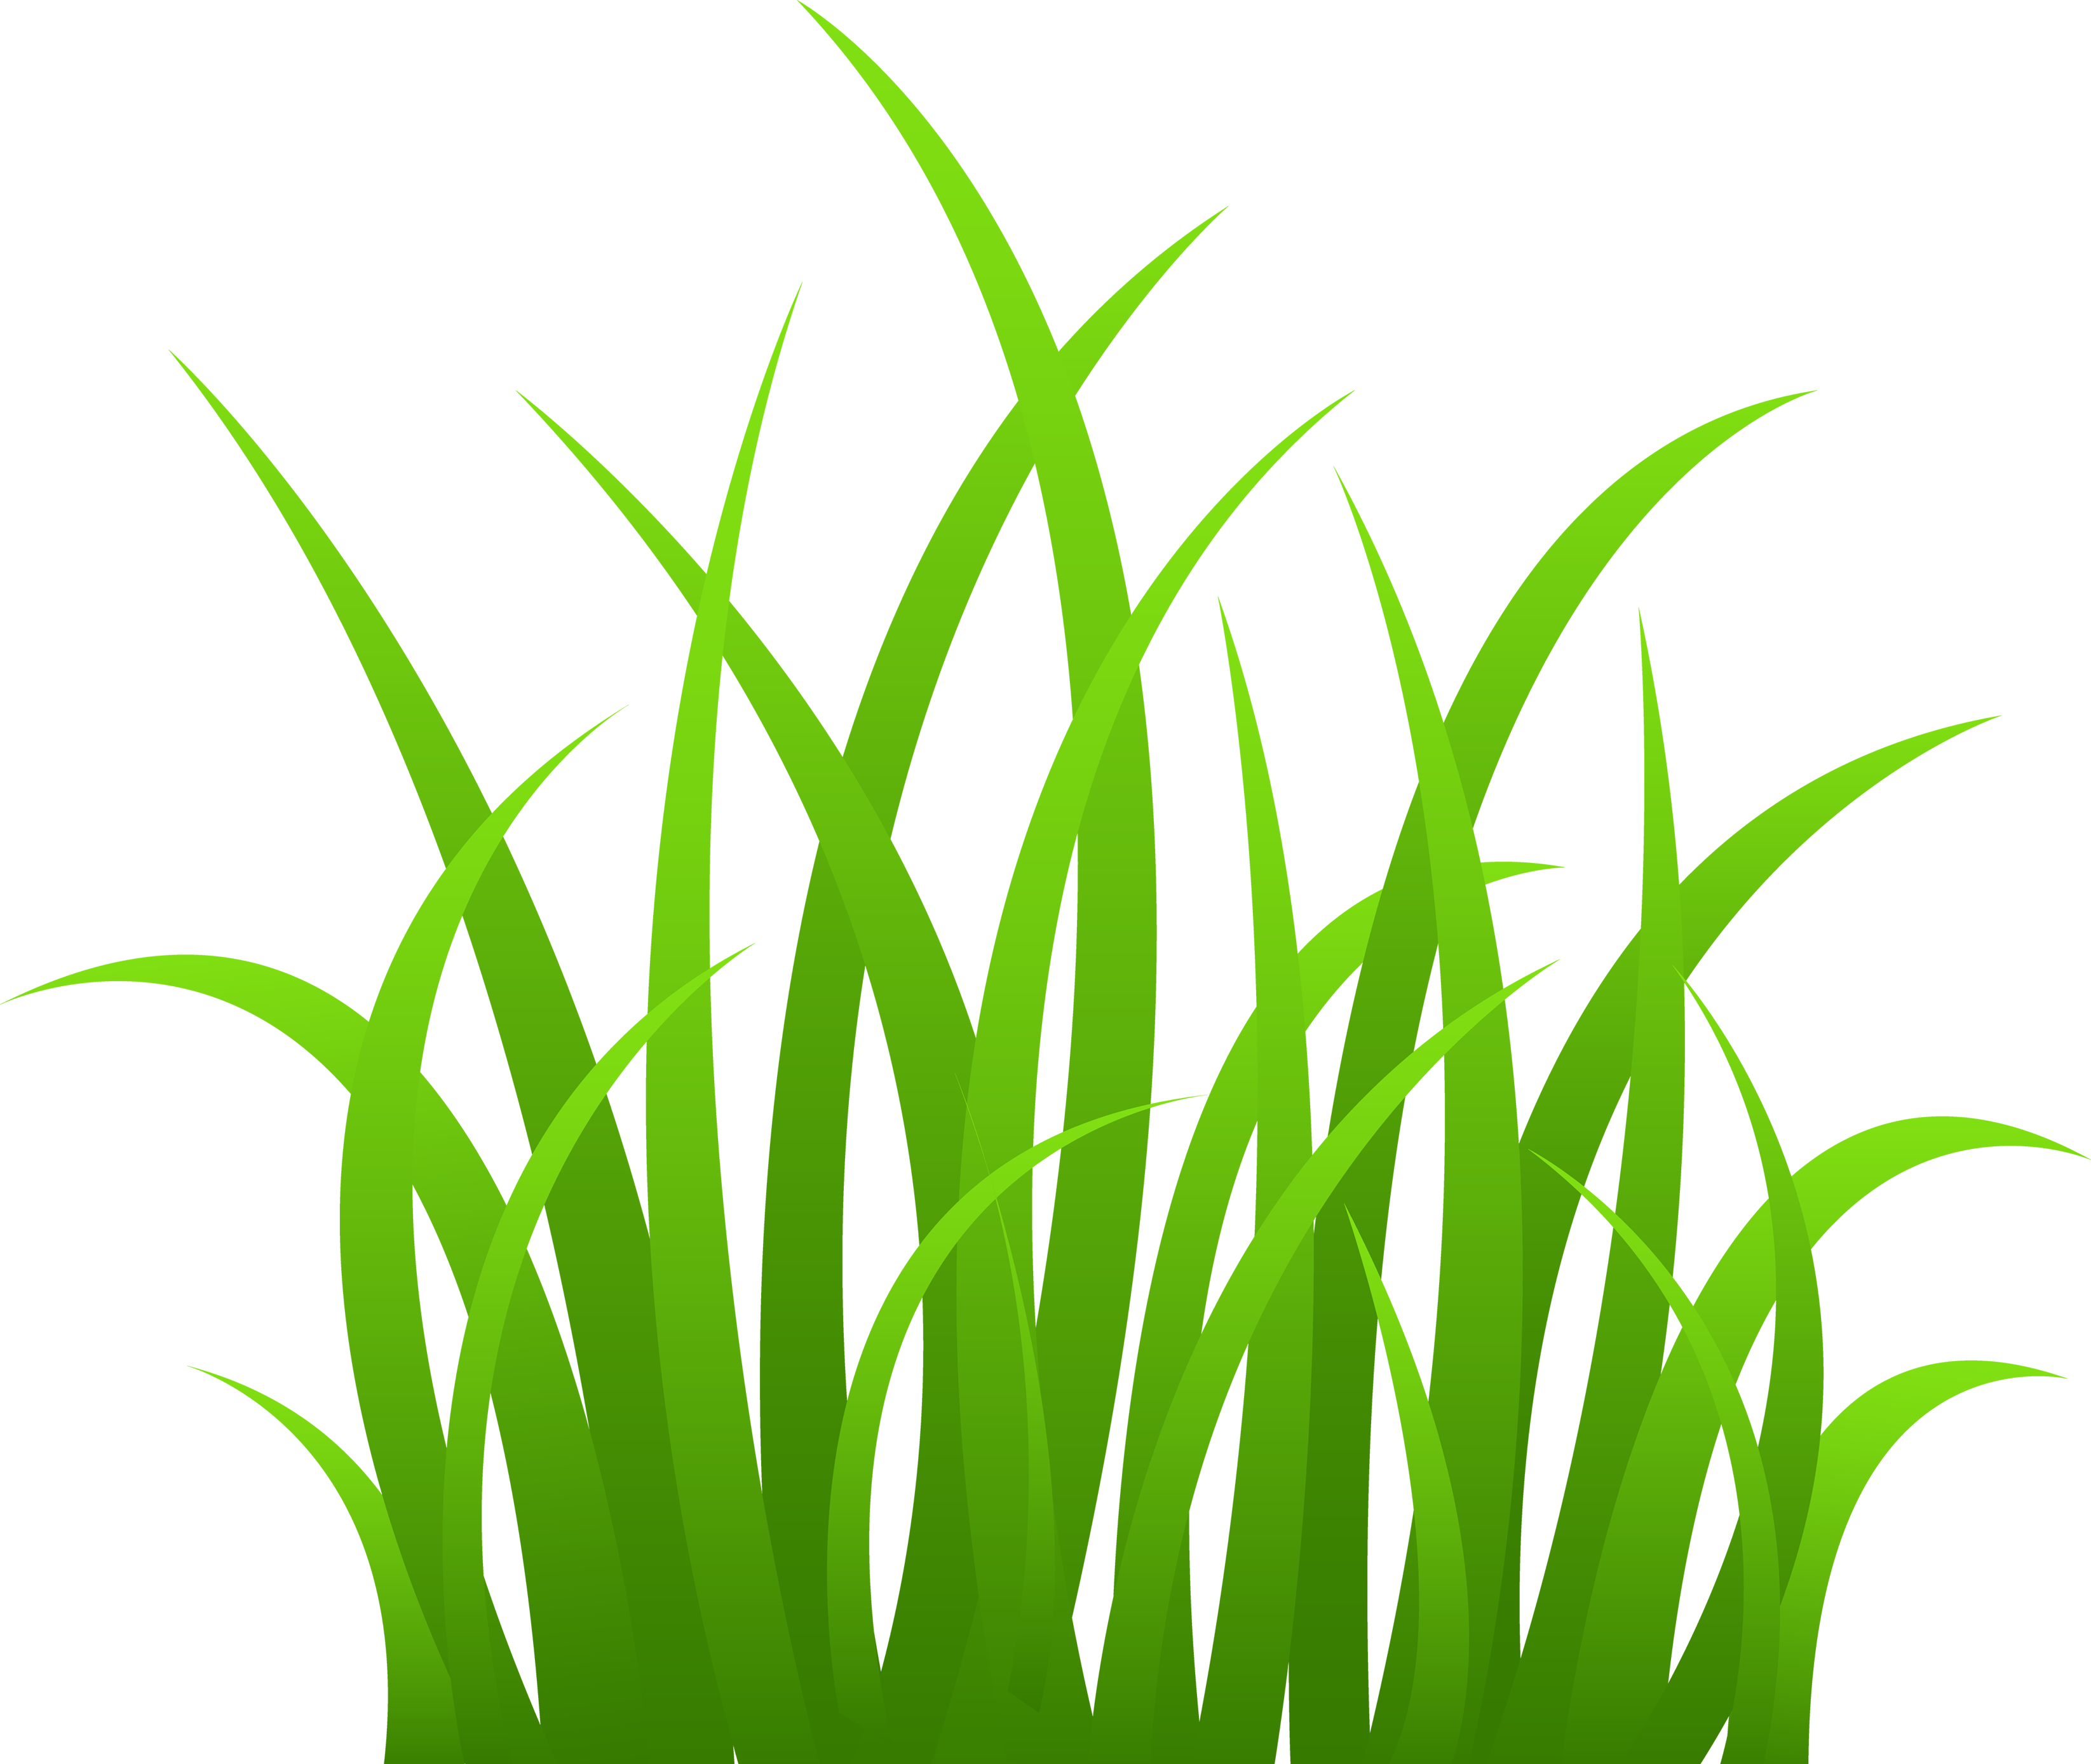 clipart free download Lawn care clipart realistic grass. Forest free on dumielauxepices.